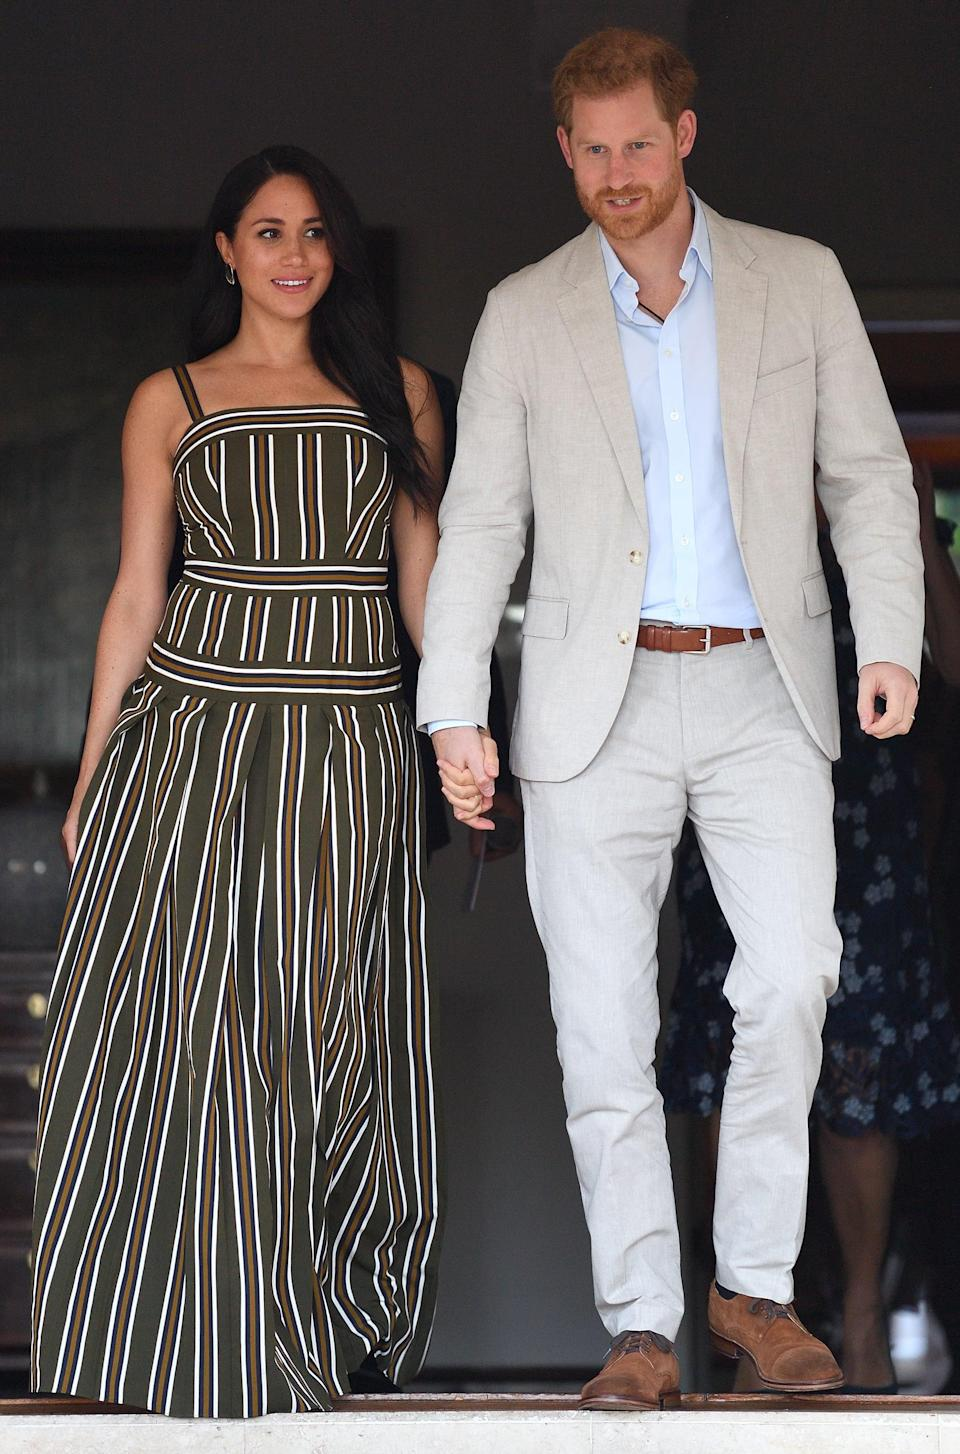 """<p>Meghan's Southern Africa tour was all about repeat outfits, as she wore <a href=""""https://www.popsugar.co.uk/fashion/photo-gallery/46669039/image/46682017/Meghan-Duchess-Sussex-Wears-Striped-Maxi-Dress"""" class=""""link rapid-noclick-resp"""" rel=""""nofollow noopener"""" target=""""_blank"""" data-ylk=""""slk:the same Martin Grant maxi dress yet again"""">the same Martin Grant maxi dress yet again</a> while visiting the Residence of the British High Commissioner during her royal tour of Cape Town, South Africa, in September 2019.</p>"""